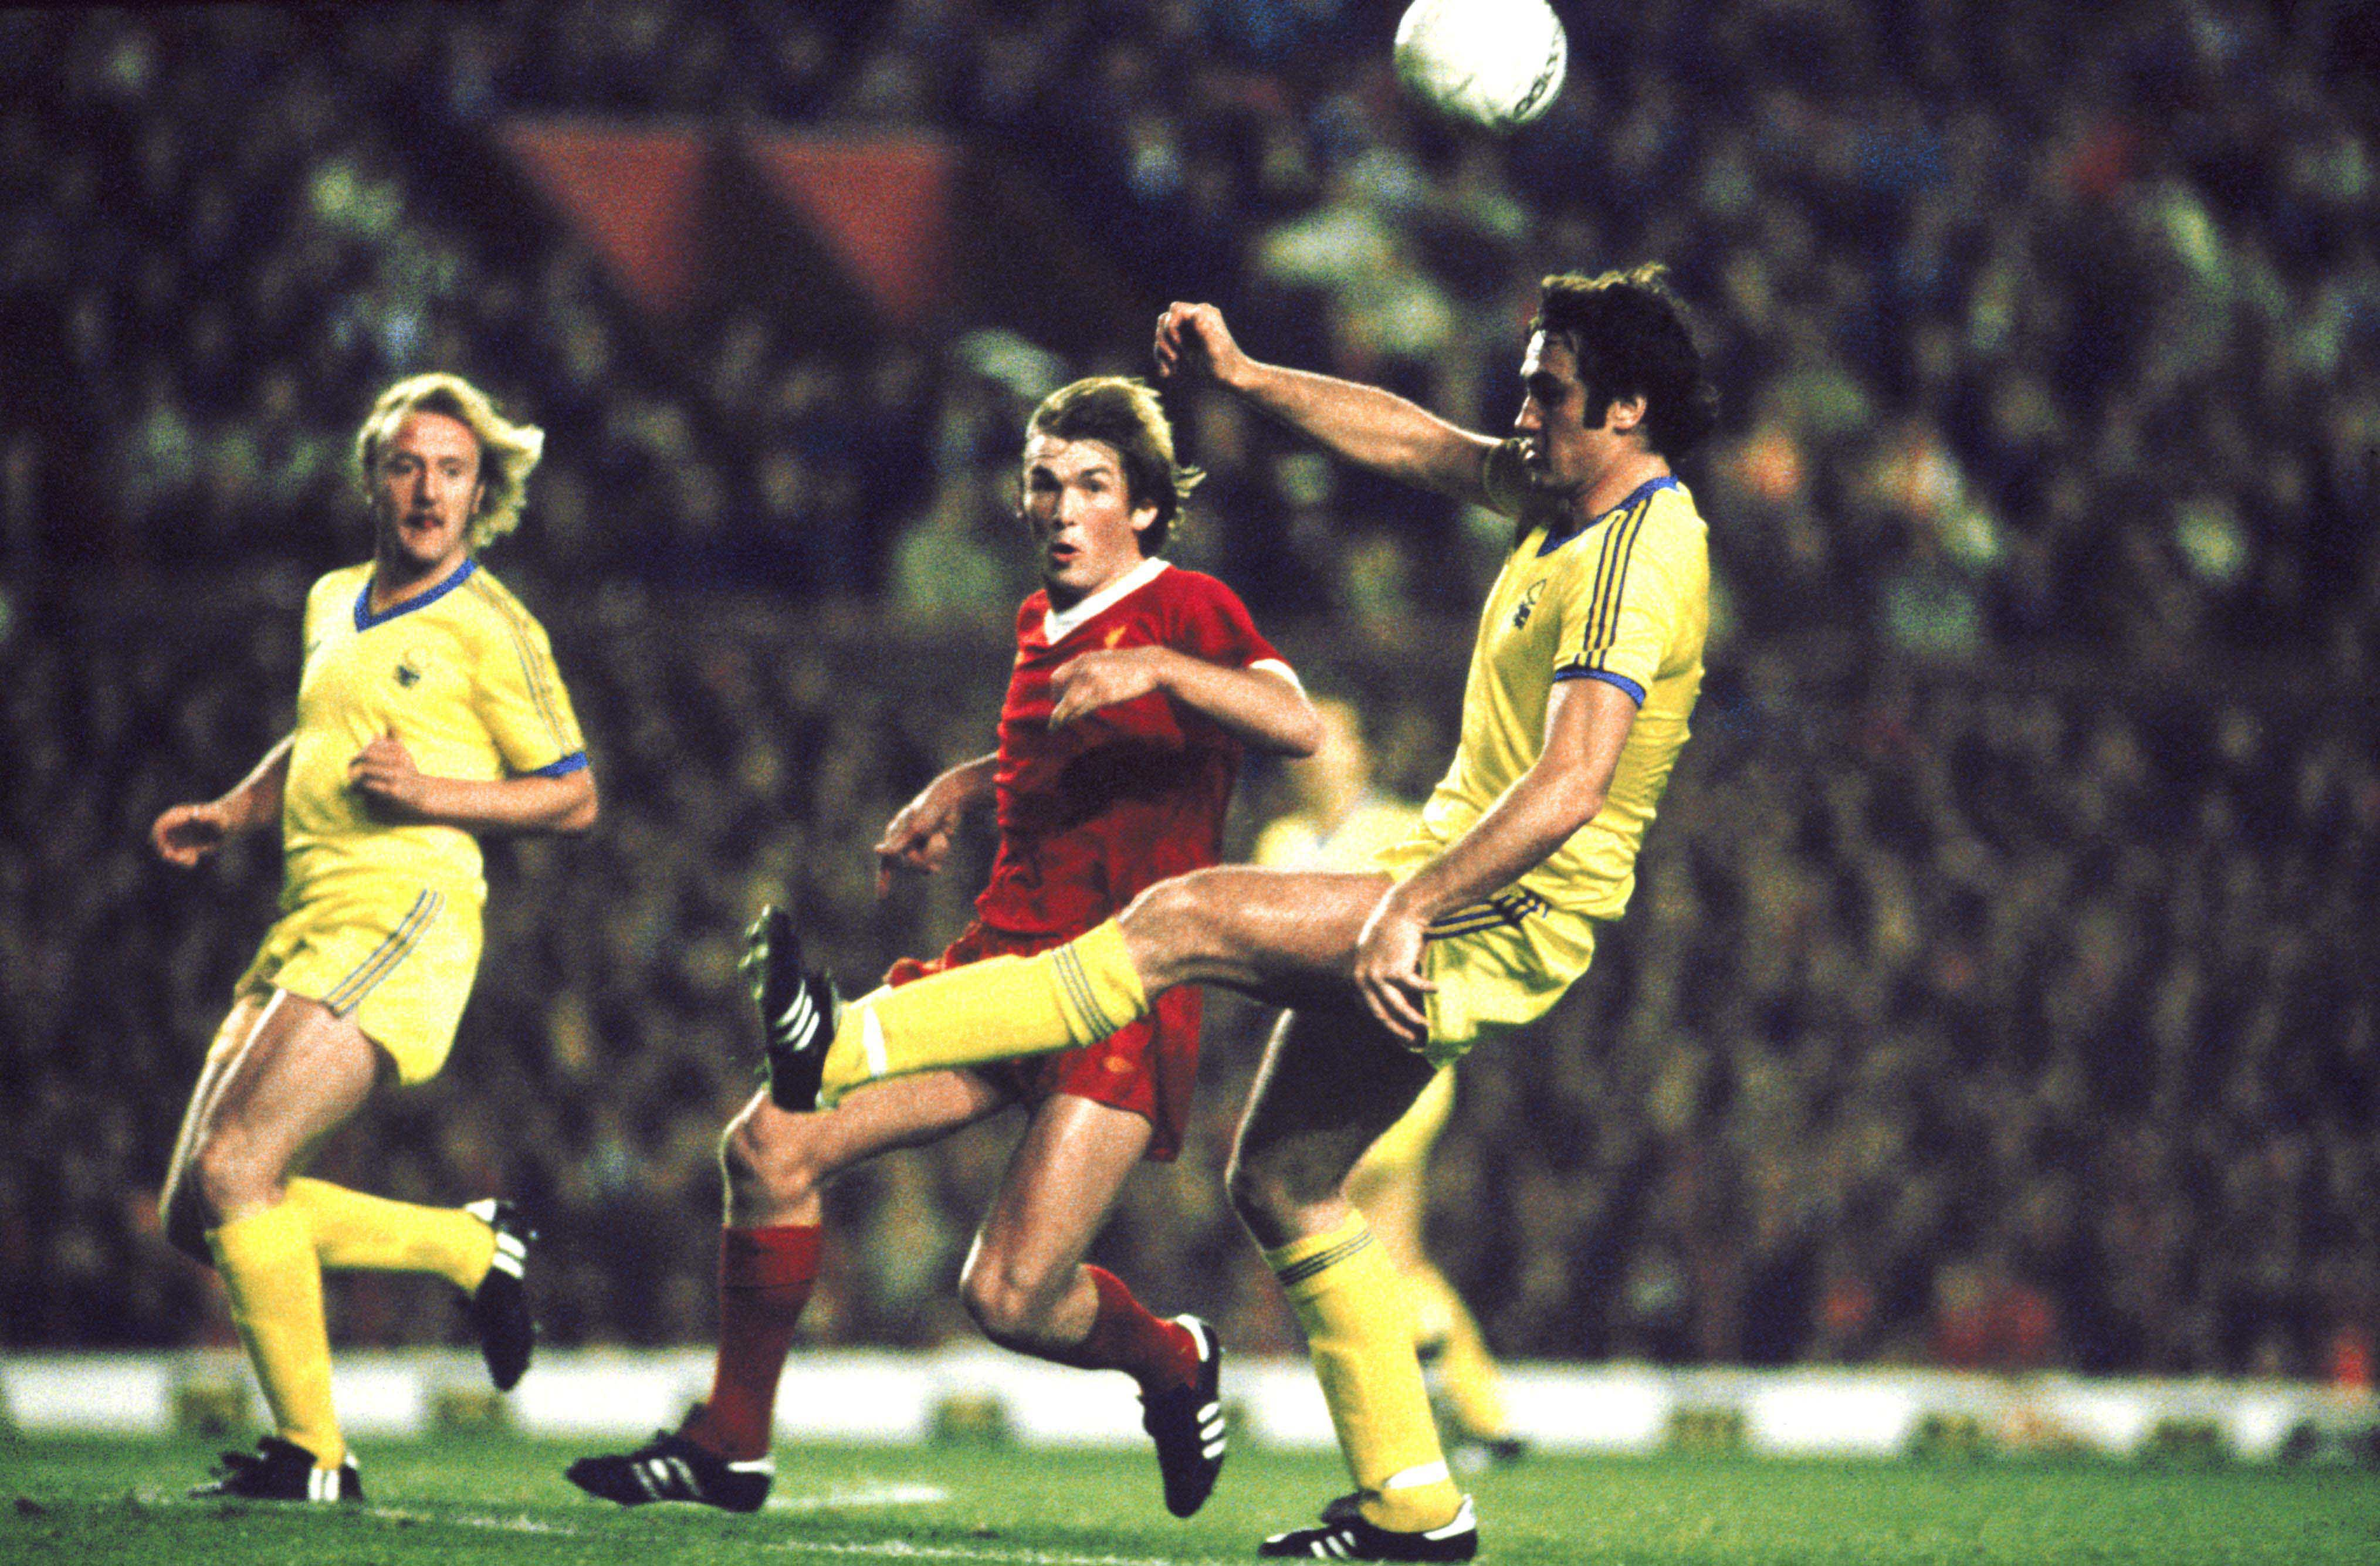 PAISLEY 1979 v DALGLISH 1988: WHICH LIVERPOOL SIDE WAS THE GREATEST?